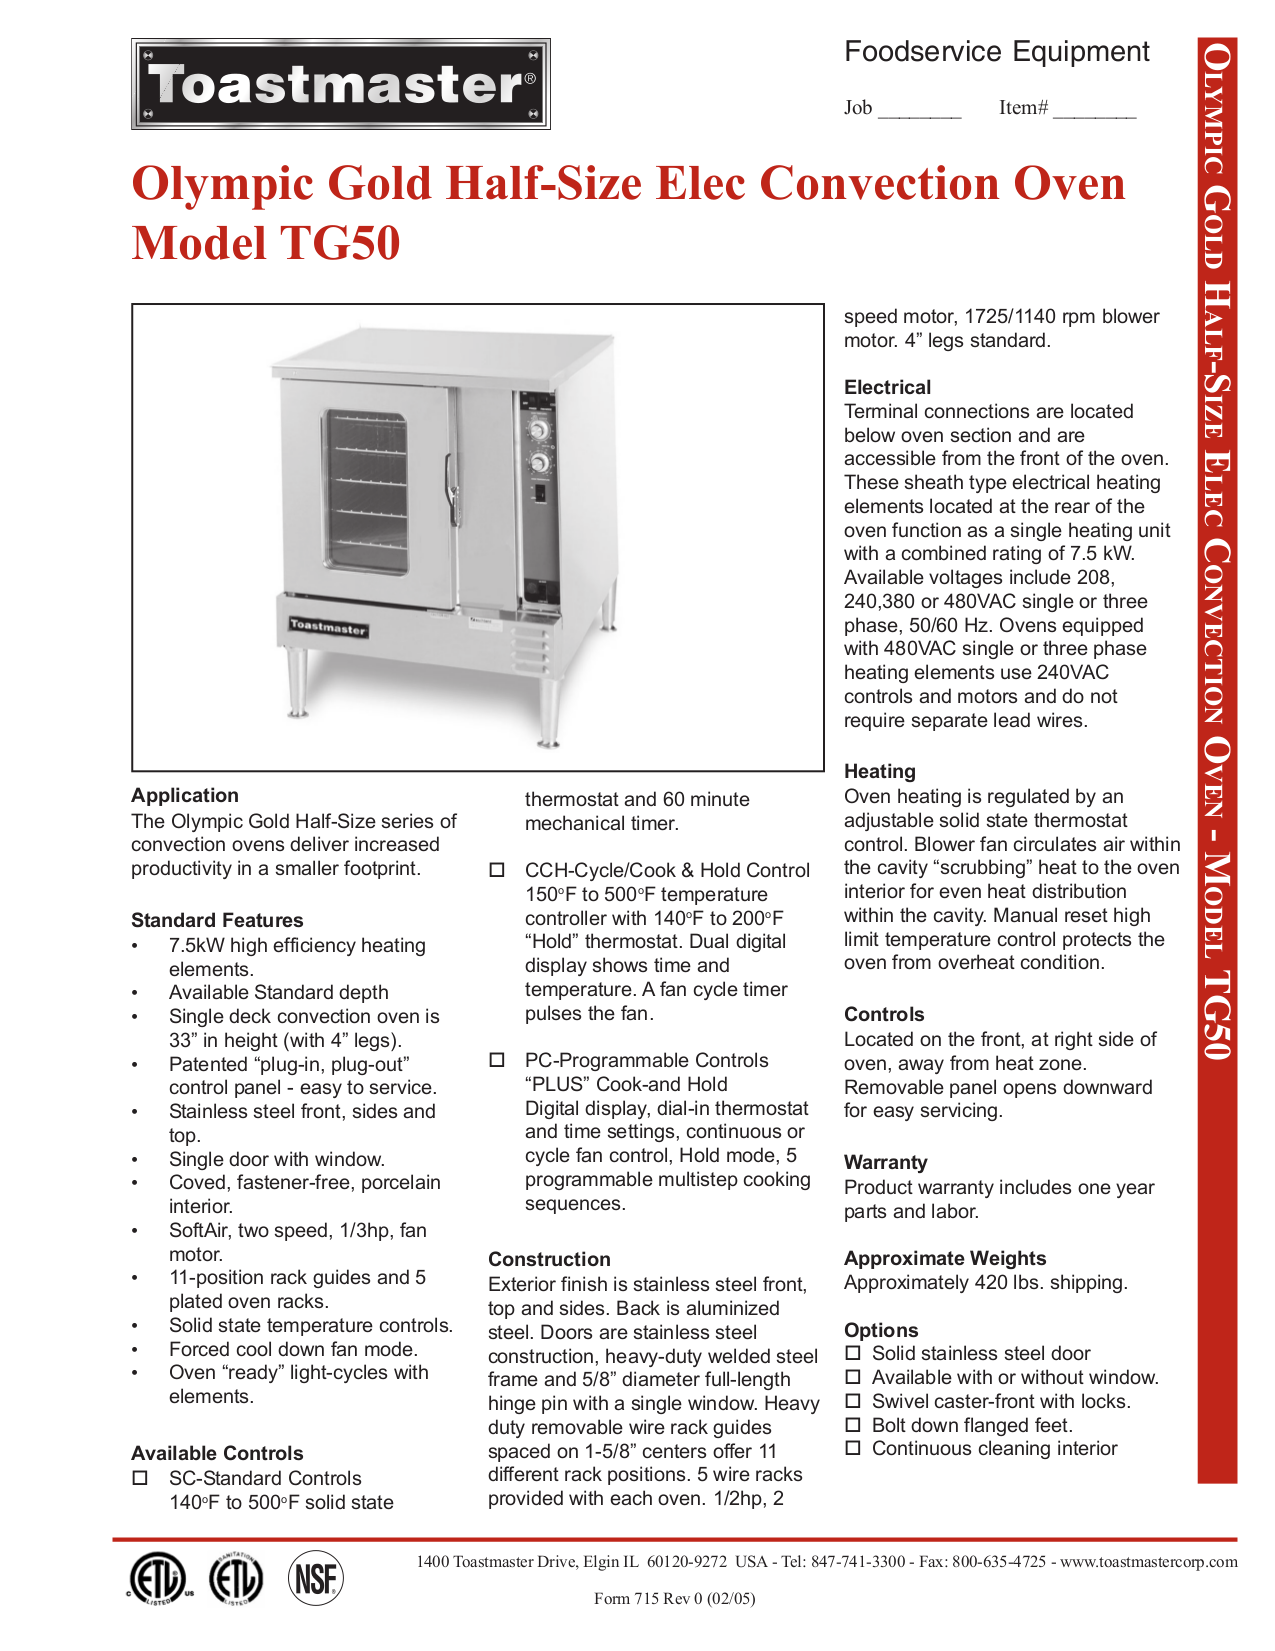 pdf for Toastmaster Oven TG50 manual